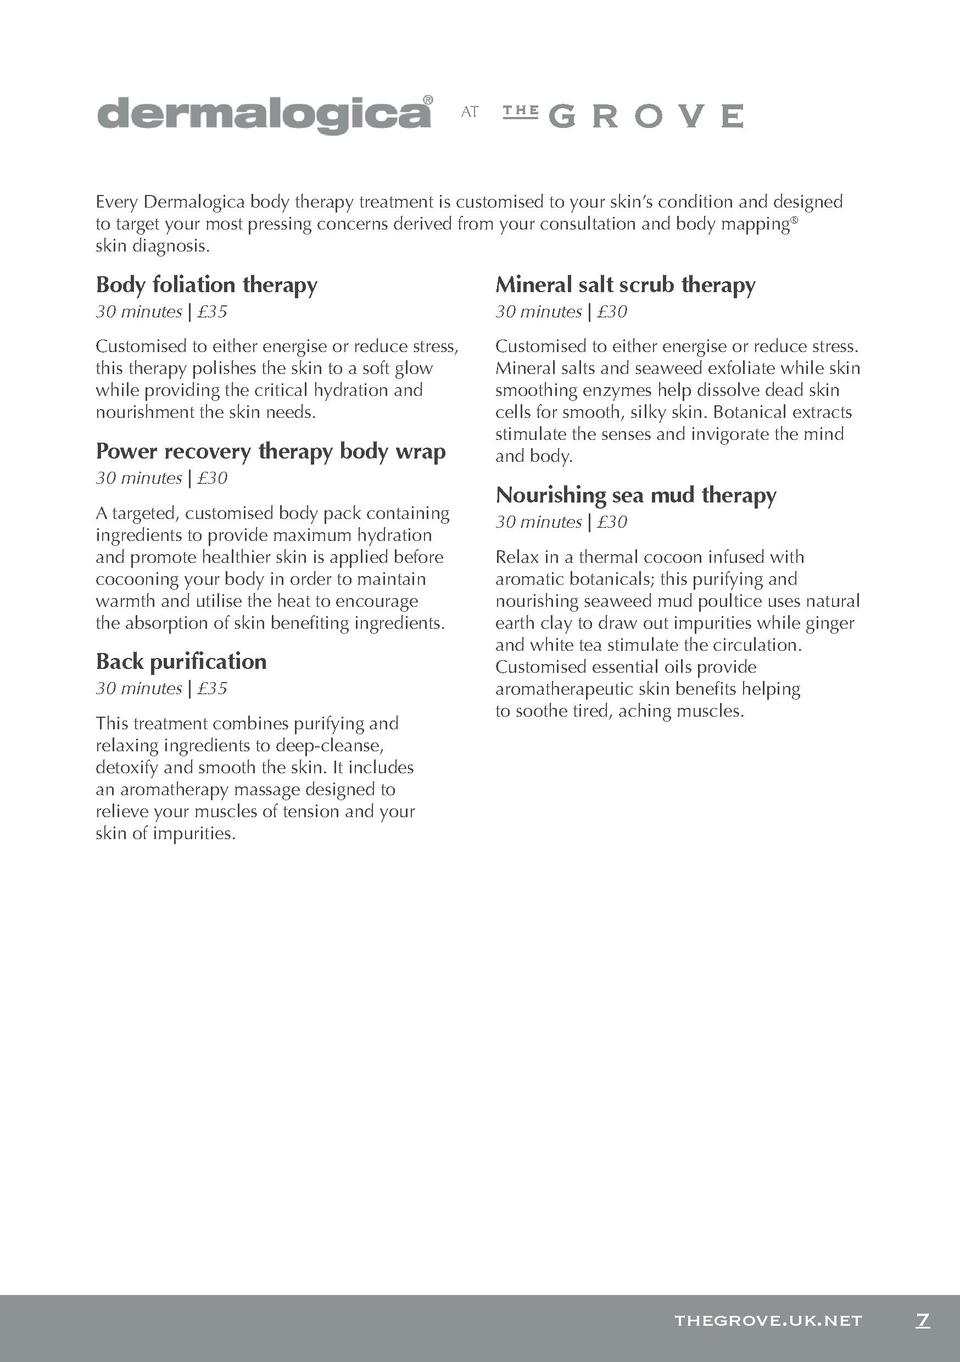 AT  tel  01487 773 088 thegrove.uk.net  Every Dermalogica body therapy treatment is customised to your skin   s condition ...